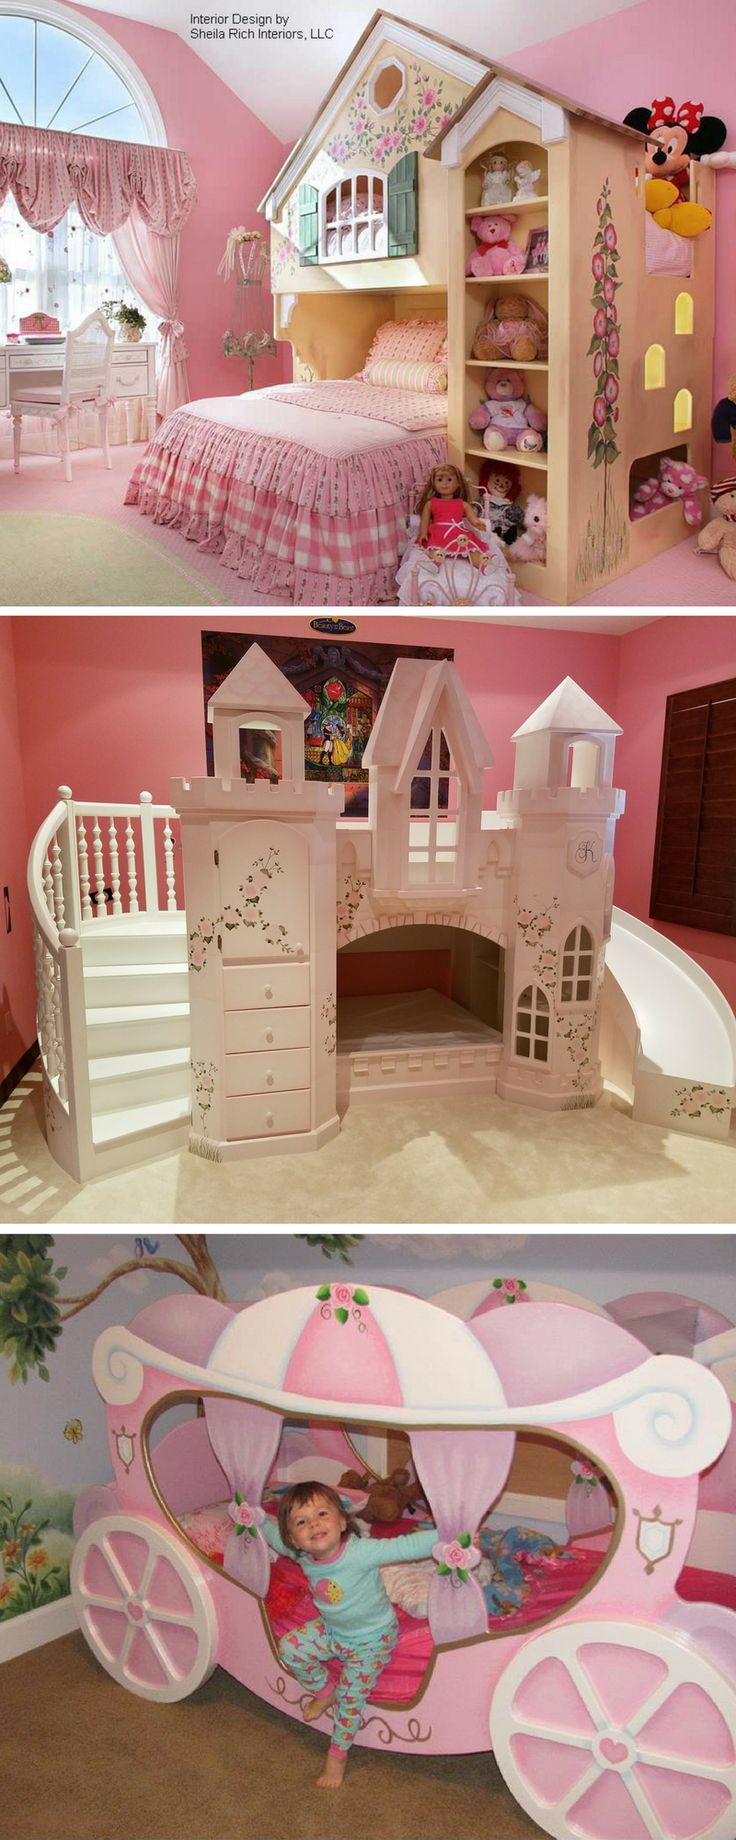 Princess castle bedroom - Pink Princess Castles Pink Princess Carriages We Have The Perfect Pink